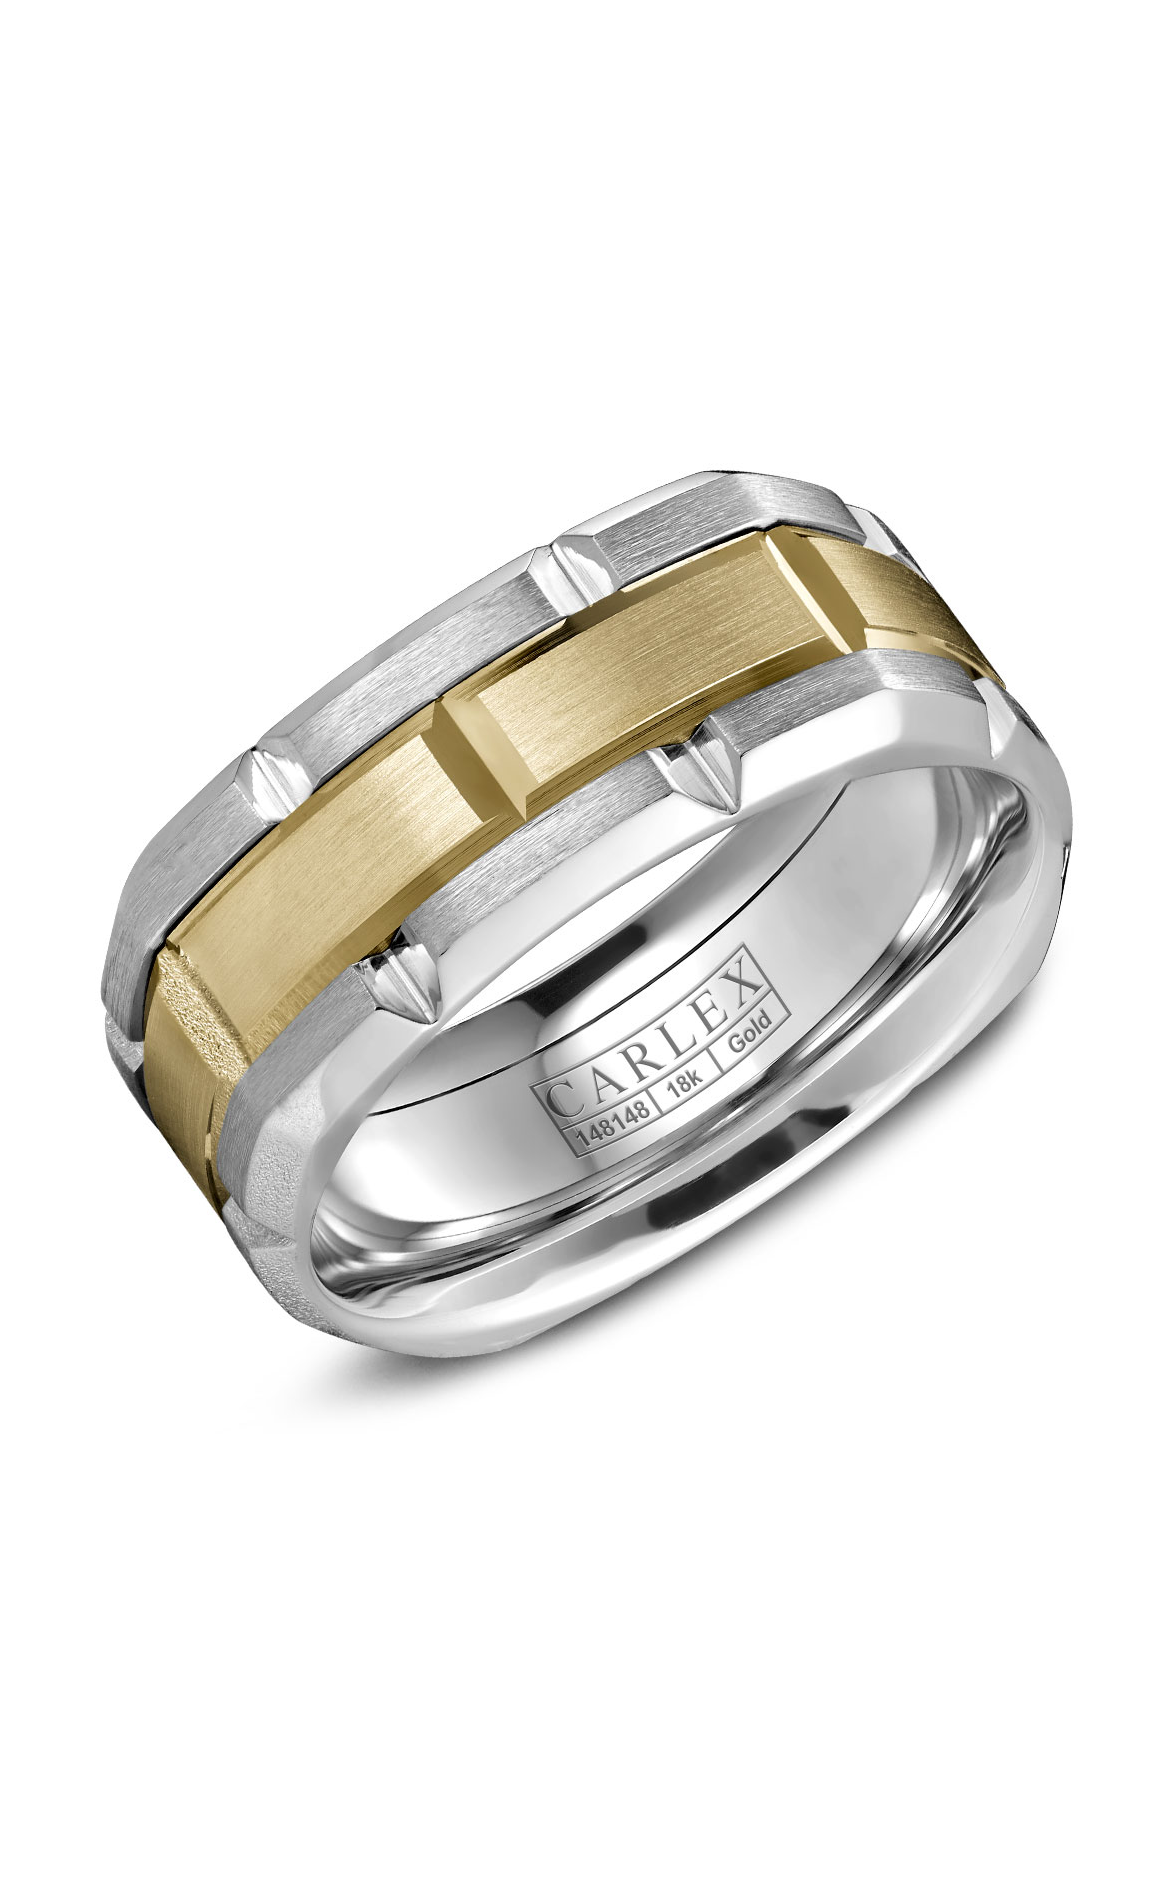 Carlex Sport Men's Wedding Band CX-0001YC product image